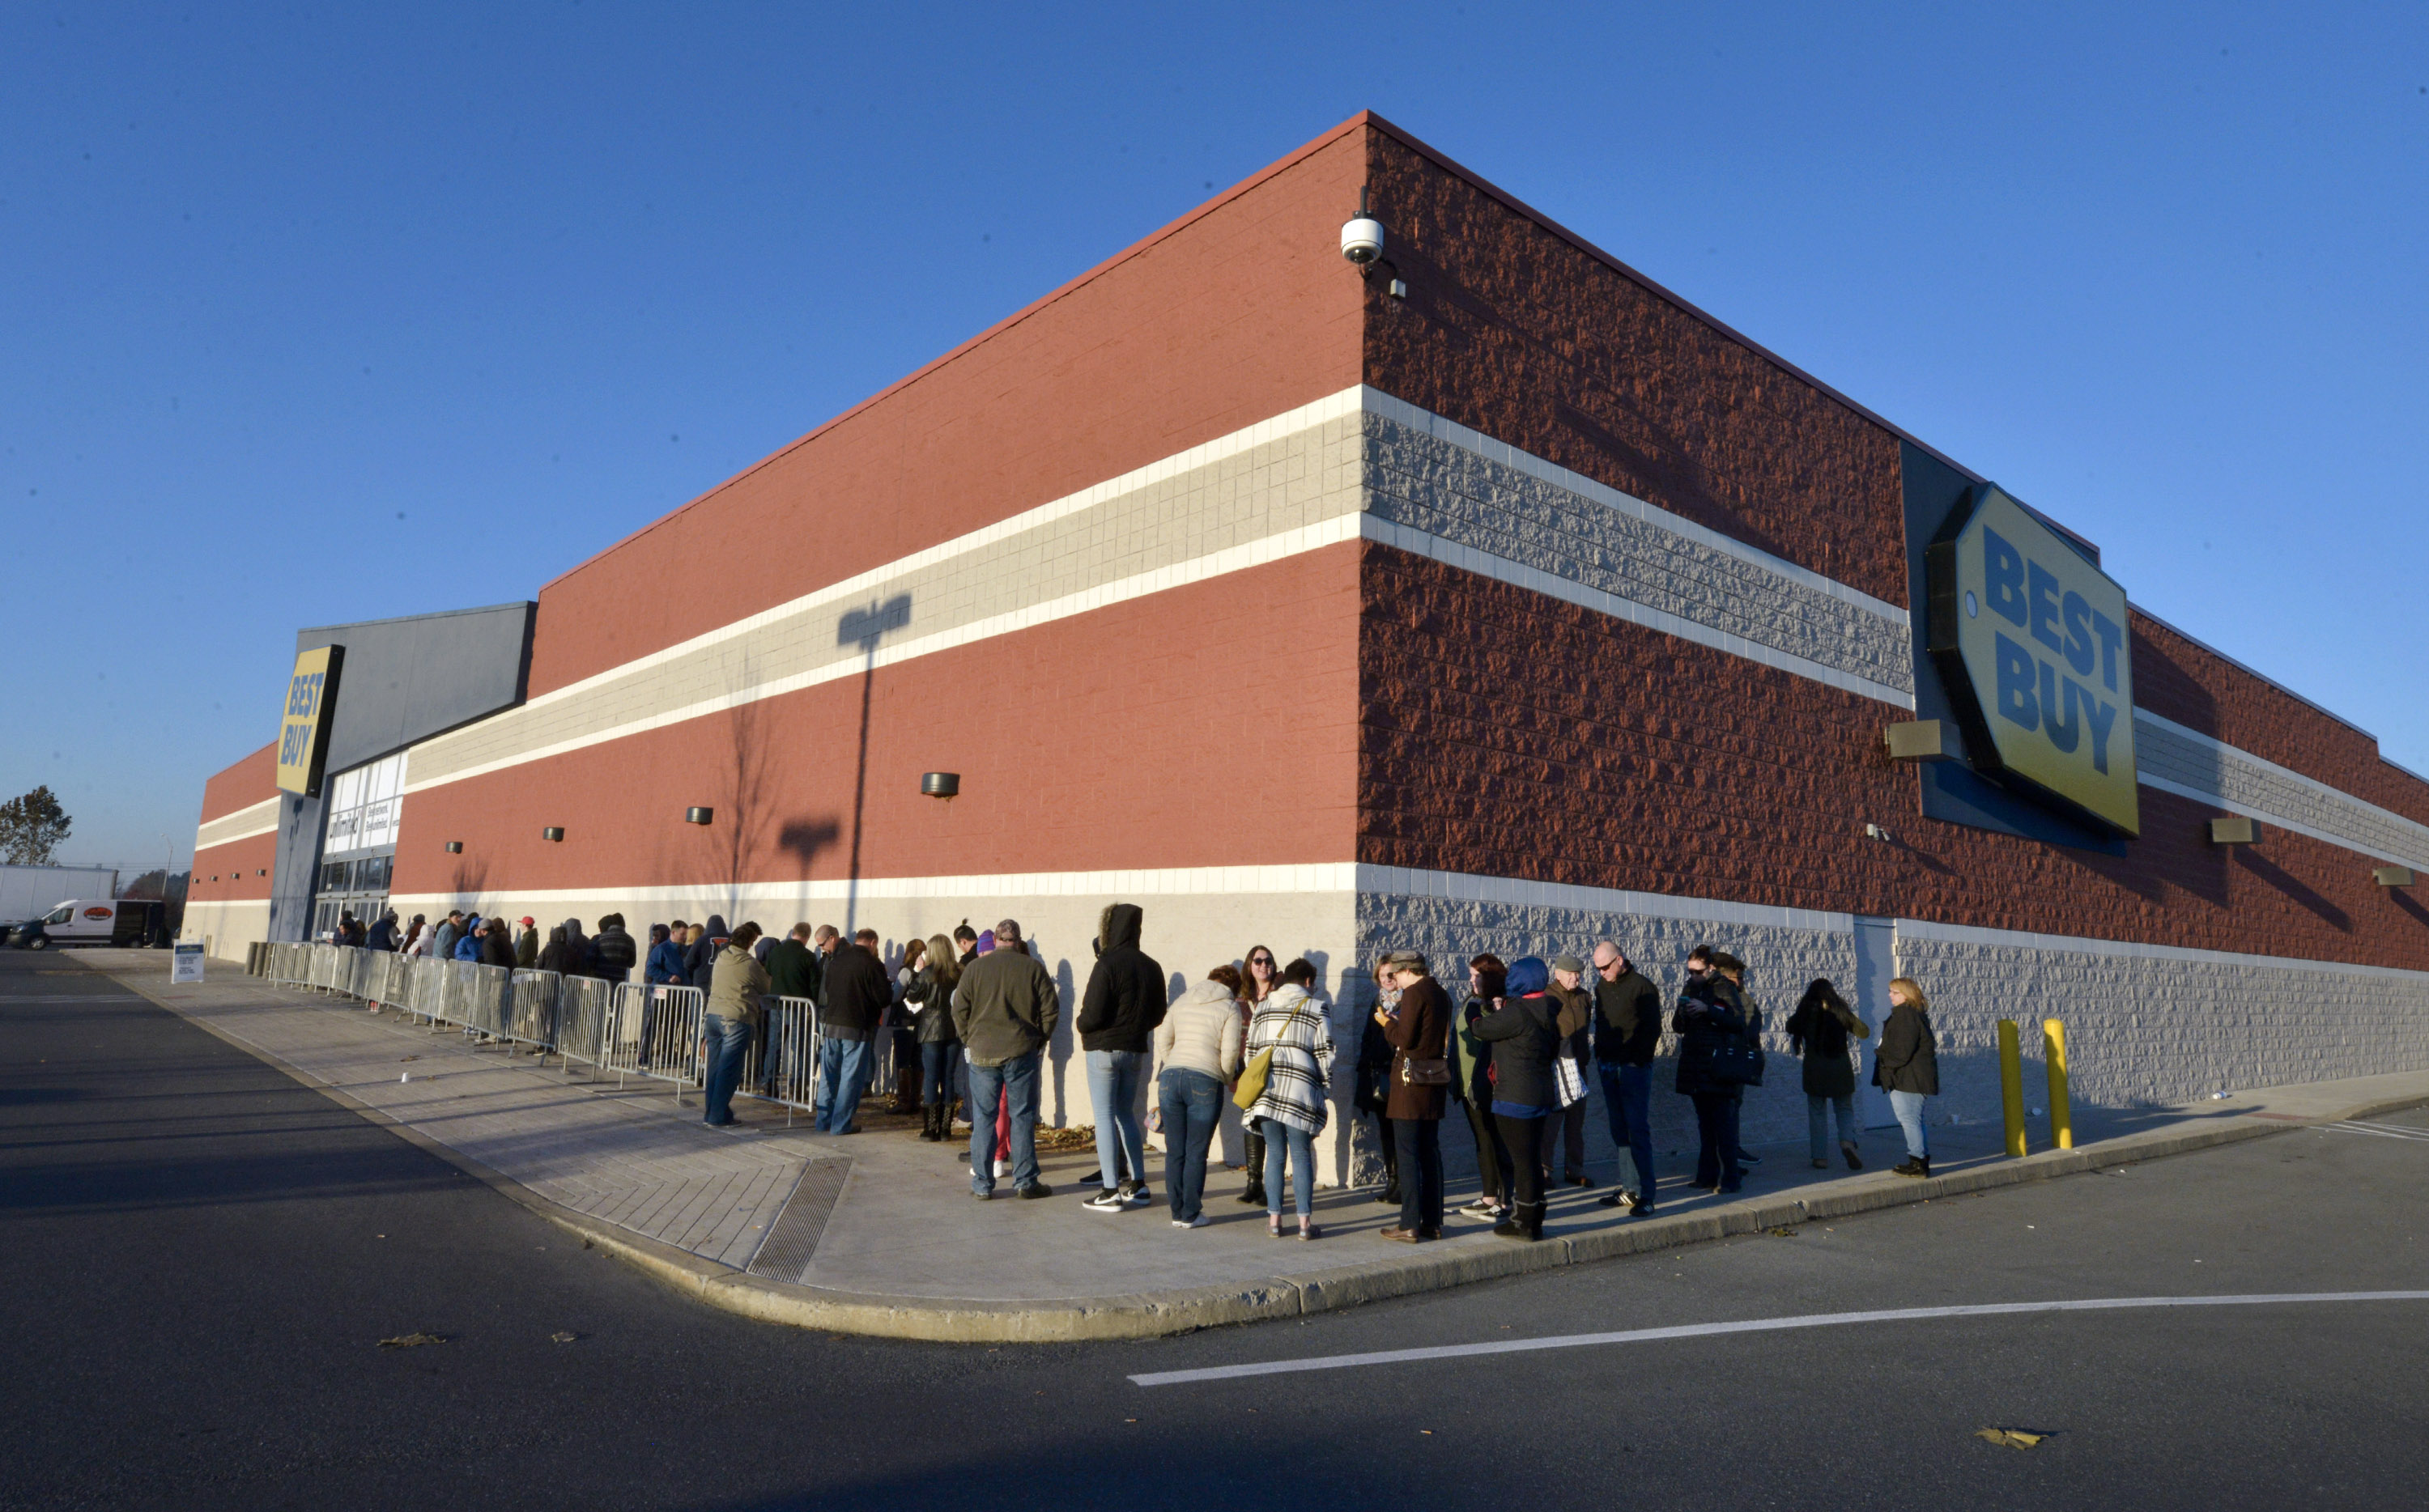 best buy to move lancaster store to red rose commons relocated store to open in the next 12 months local news lancasteronline com best buy to move lancaster store to red rose commons relocated store to open in the next 12 months local news lancasteronline com